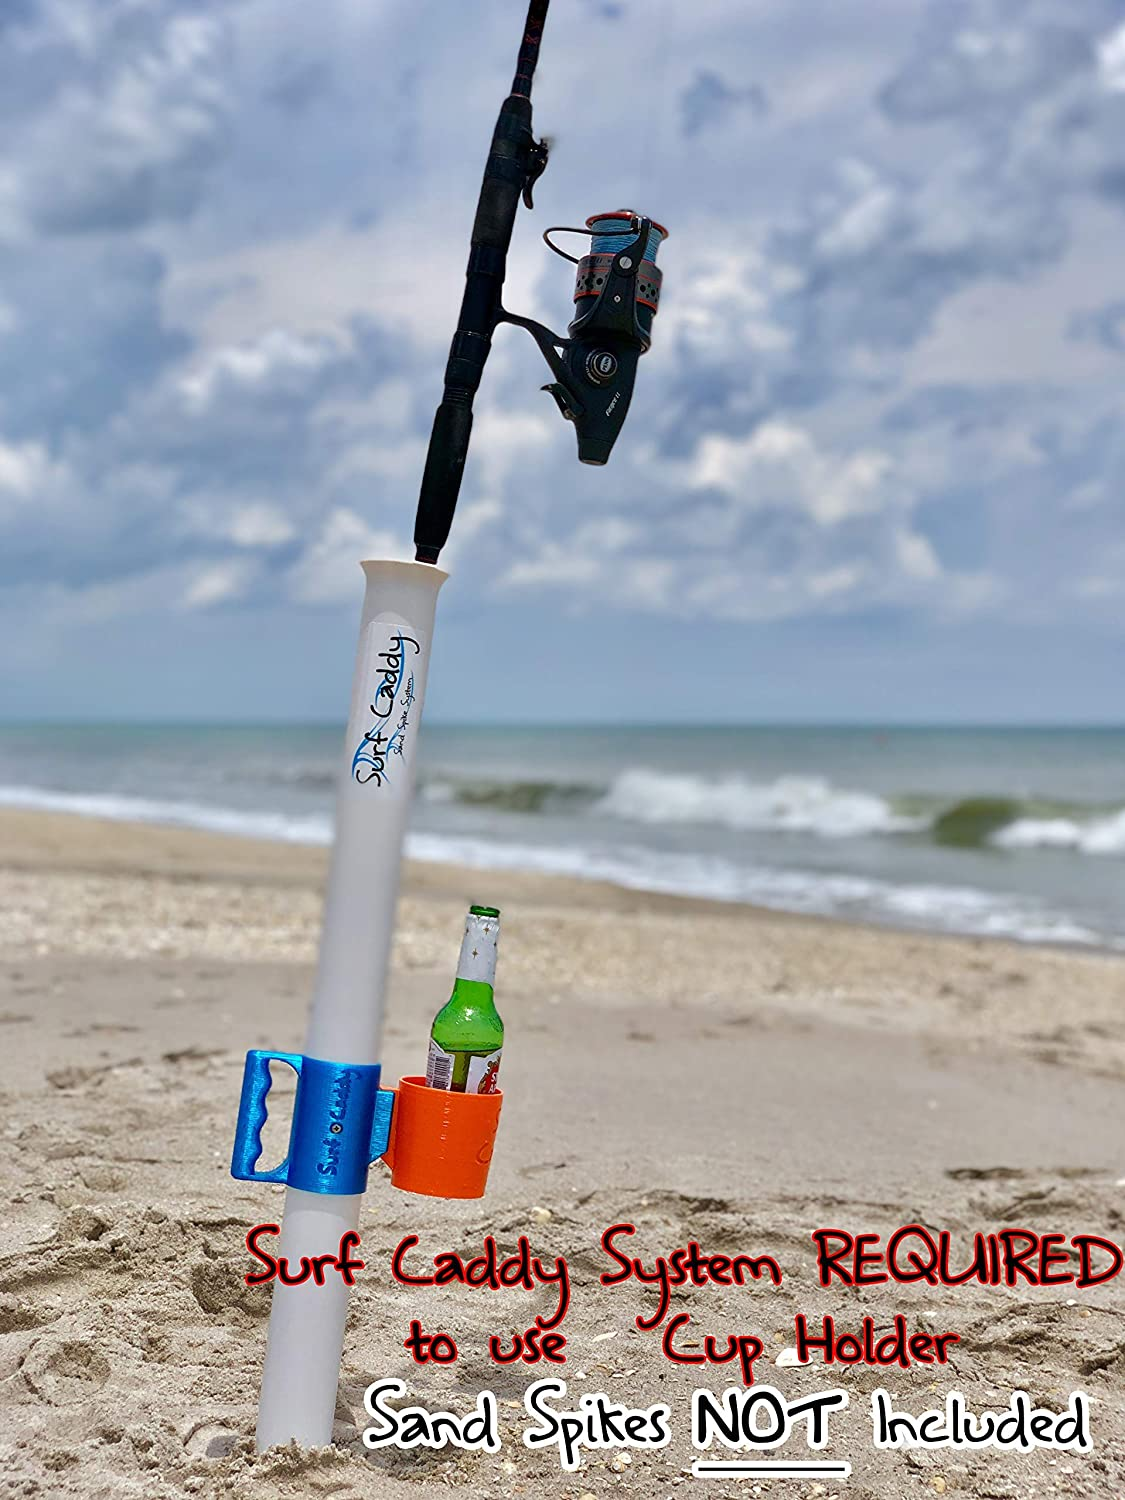 Surf Caddy Sand Spike Carry System Cup Holder